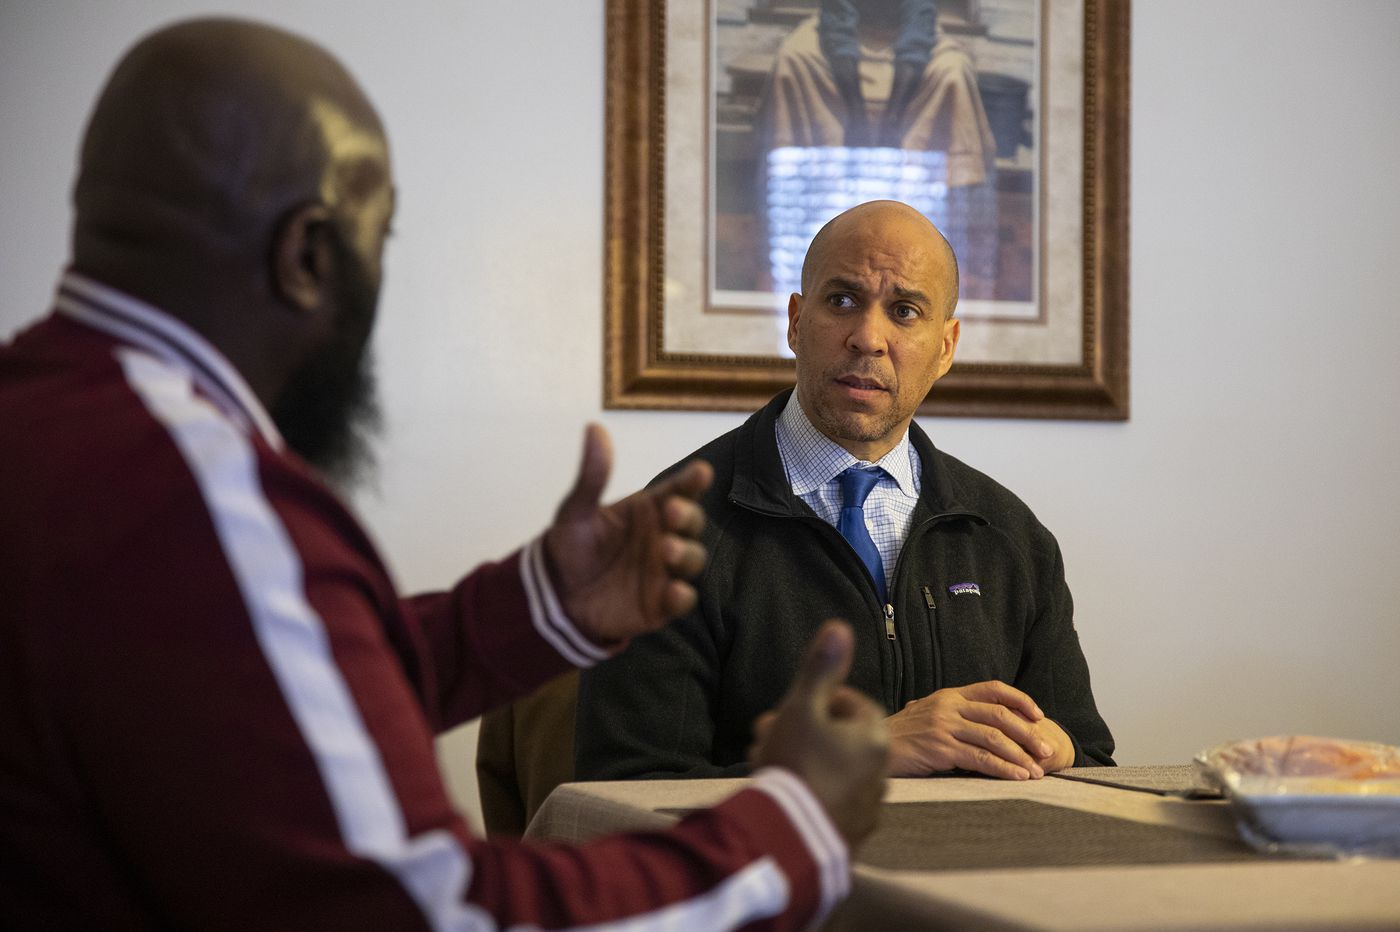 'I owe a debt'; Cory Booker, the son of civil rights activists, is leading the push for police reform